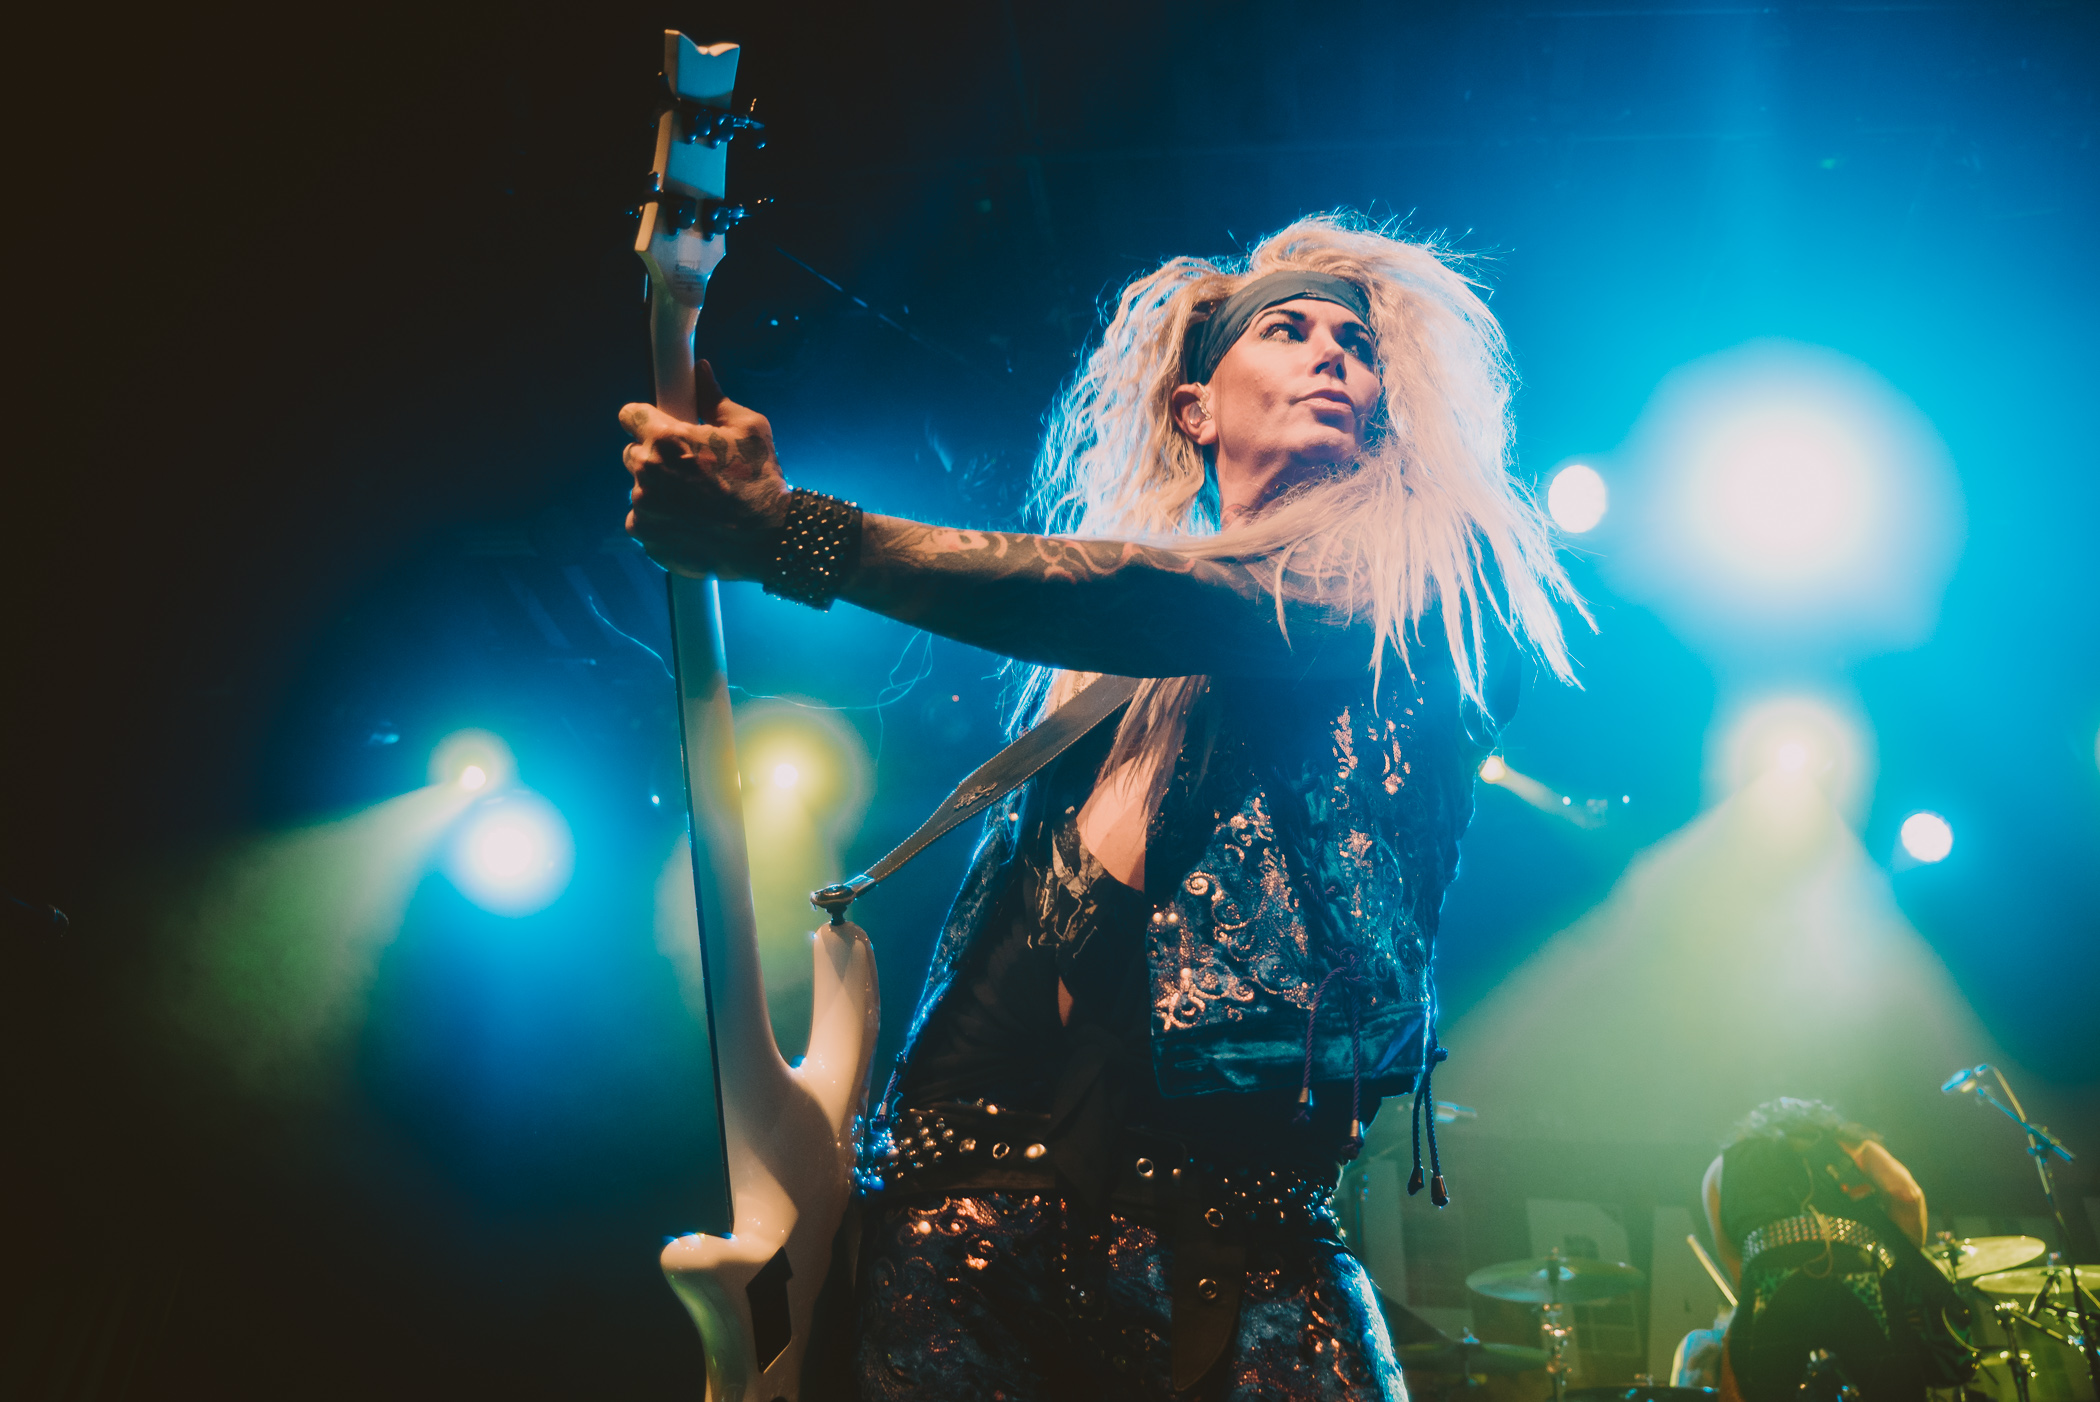 1_Steel_Panther-Commodore-Ballroom-Timothy_Nguyen-20190411 (18 of 21).JPG